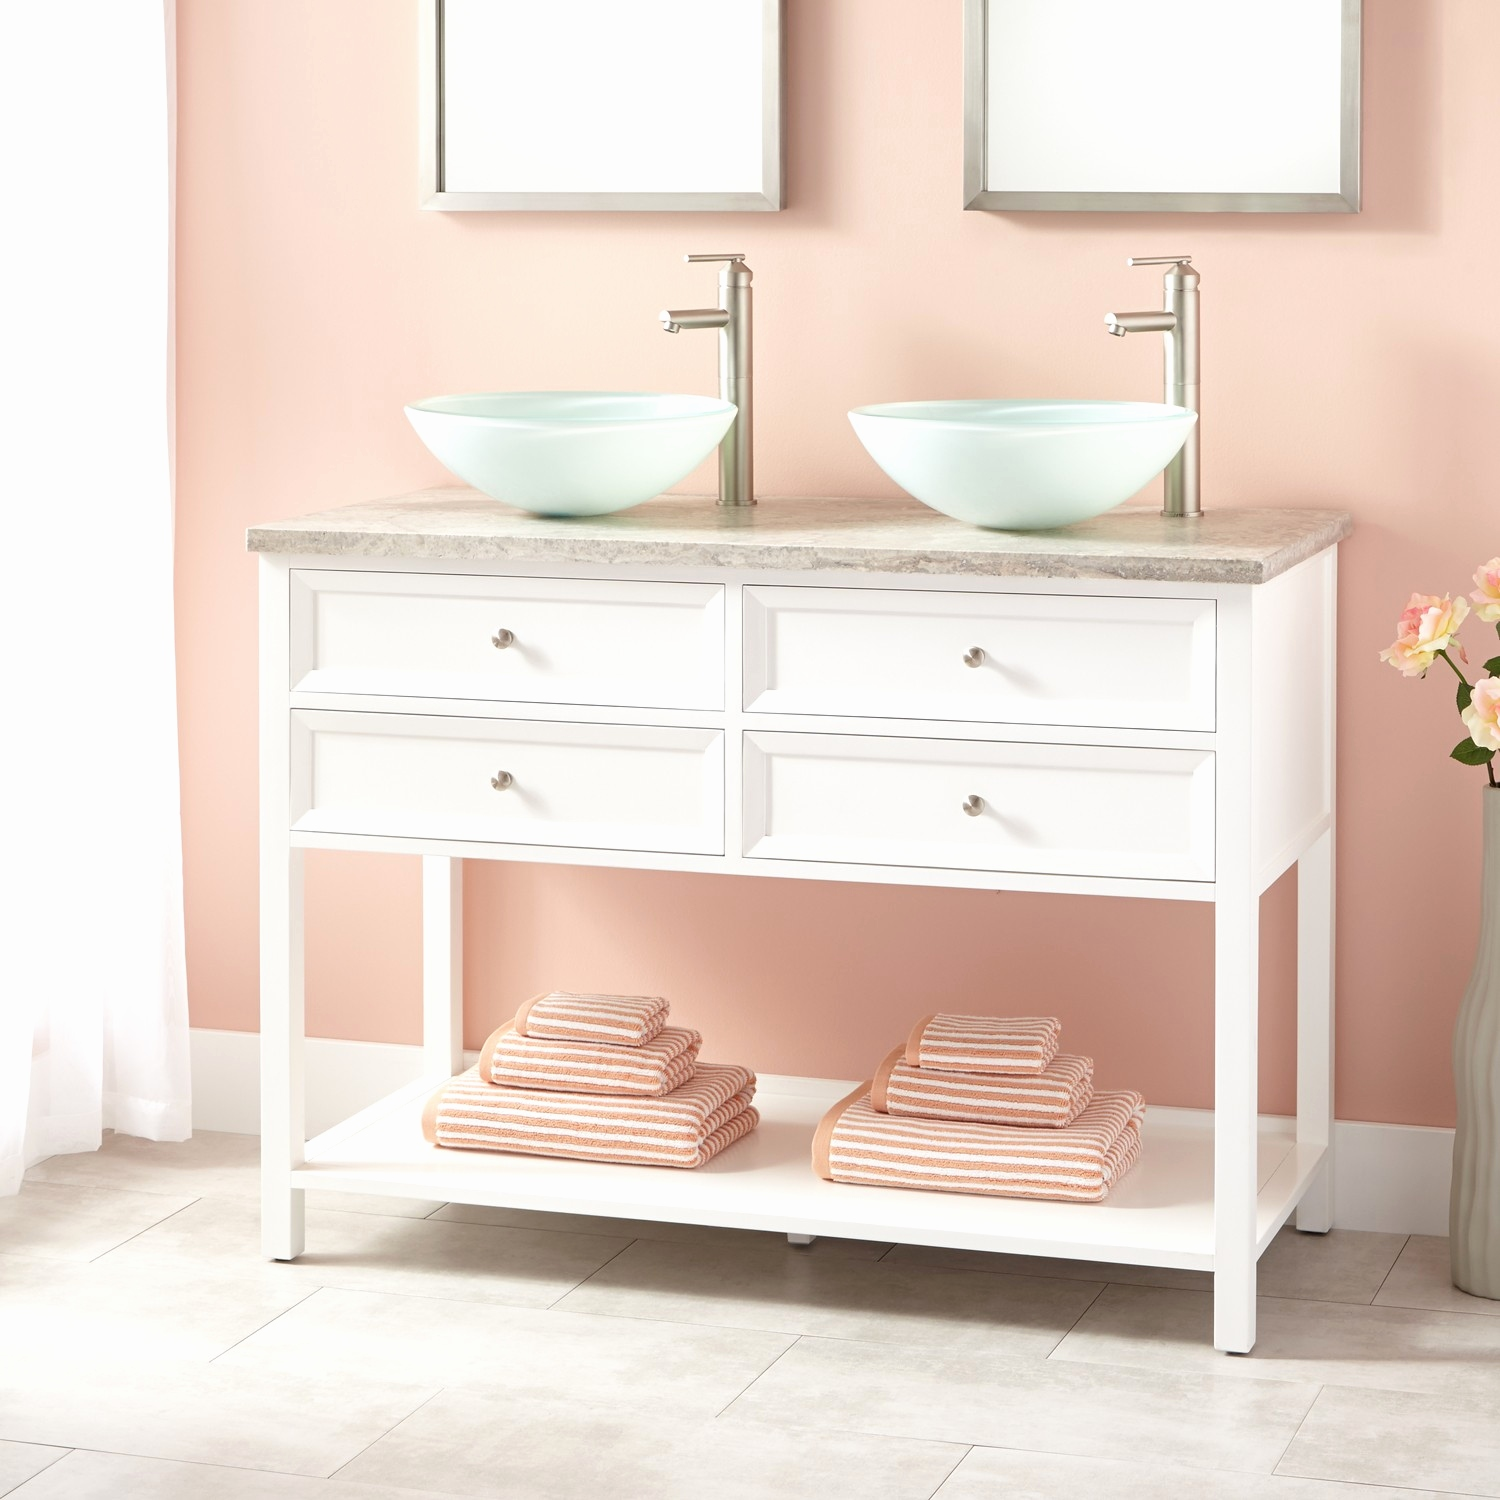 Picture of: 48 inch double sink vanity Lovely 48″ Wynne Double Vessel Sink Vanity White Bathroom